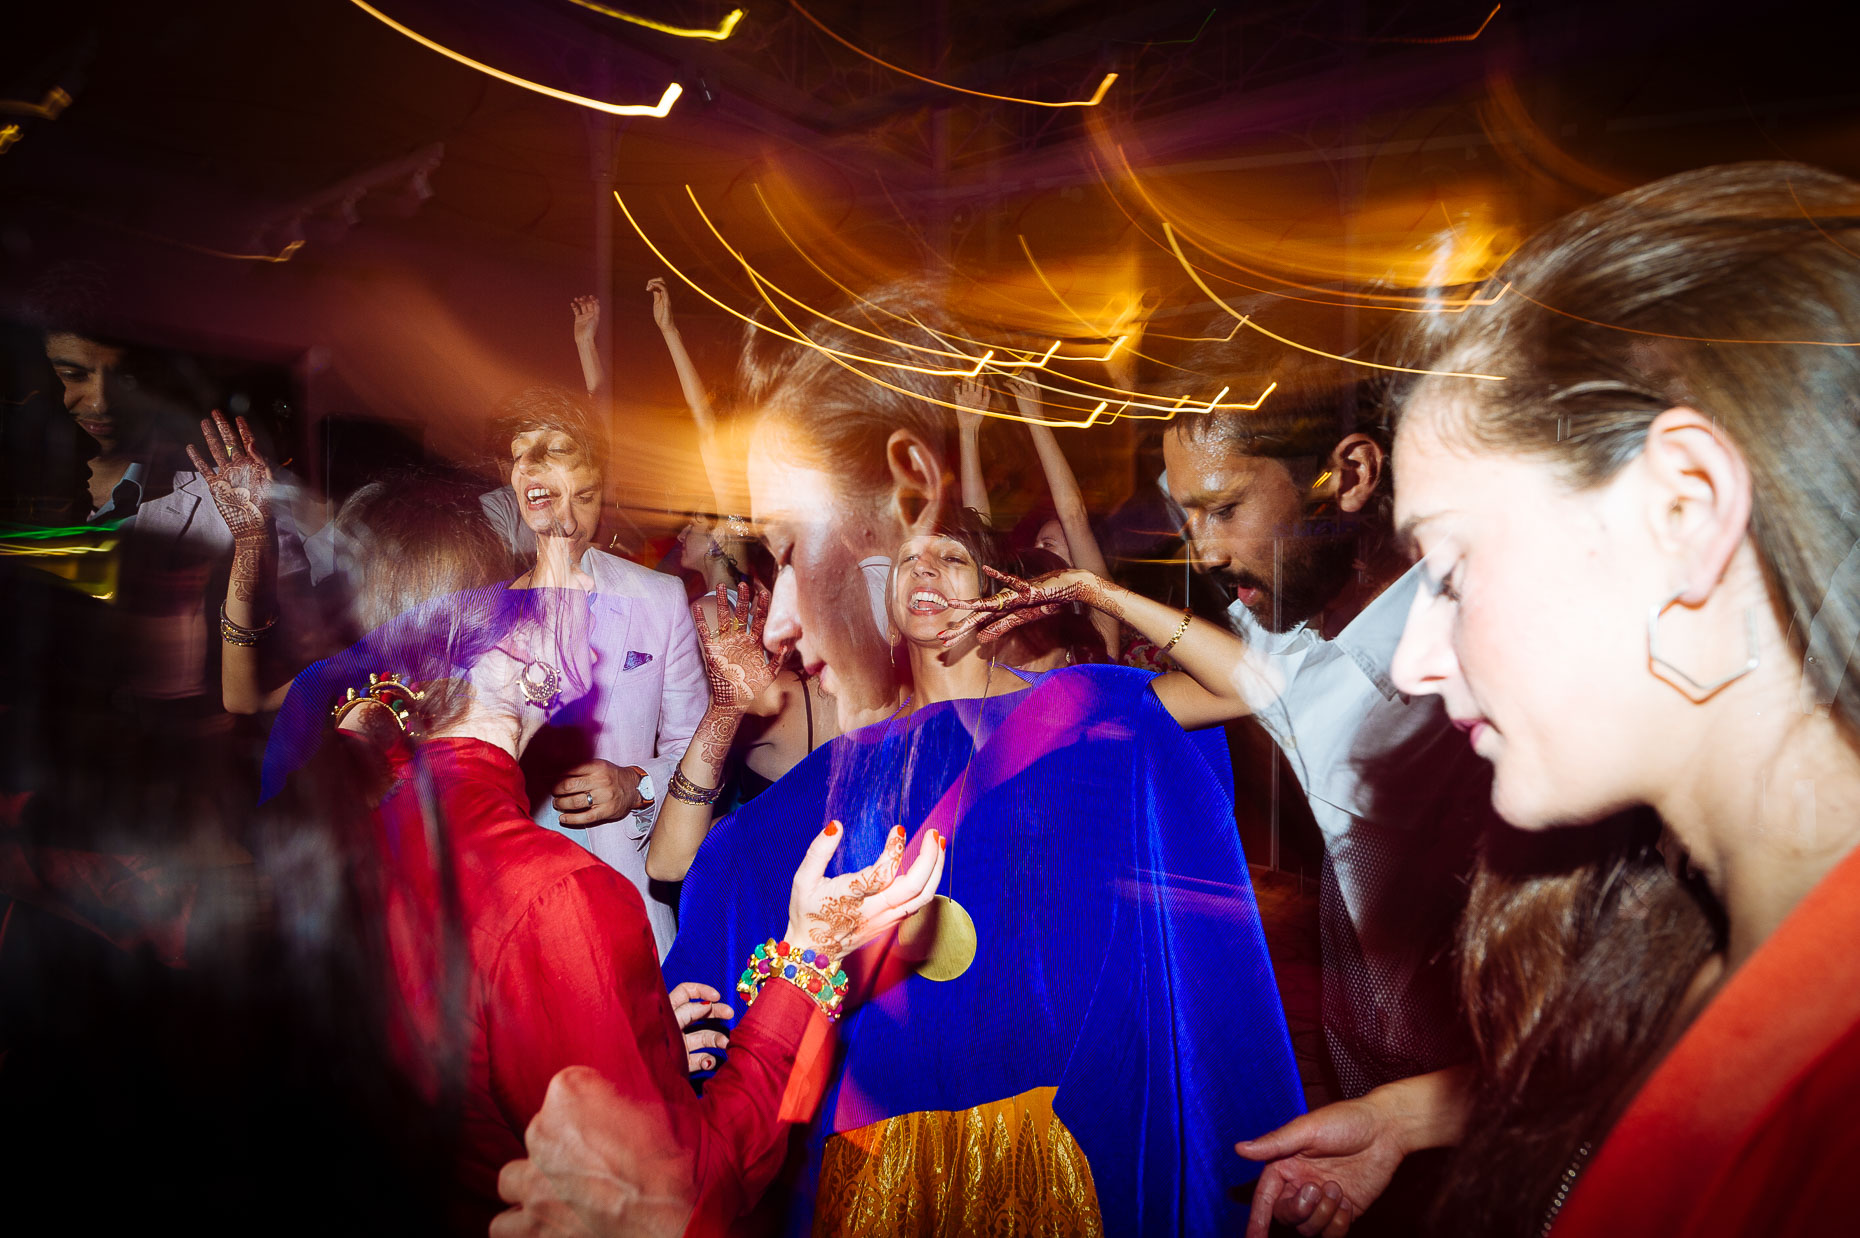 pooja-dan-v-and-a-museum-childhood-dancefloor-fusion-wedding-31